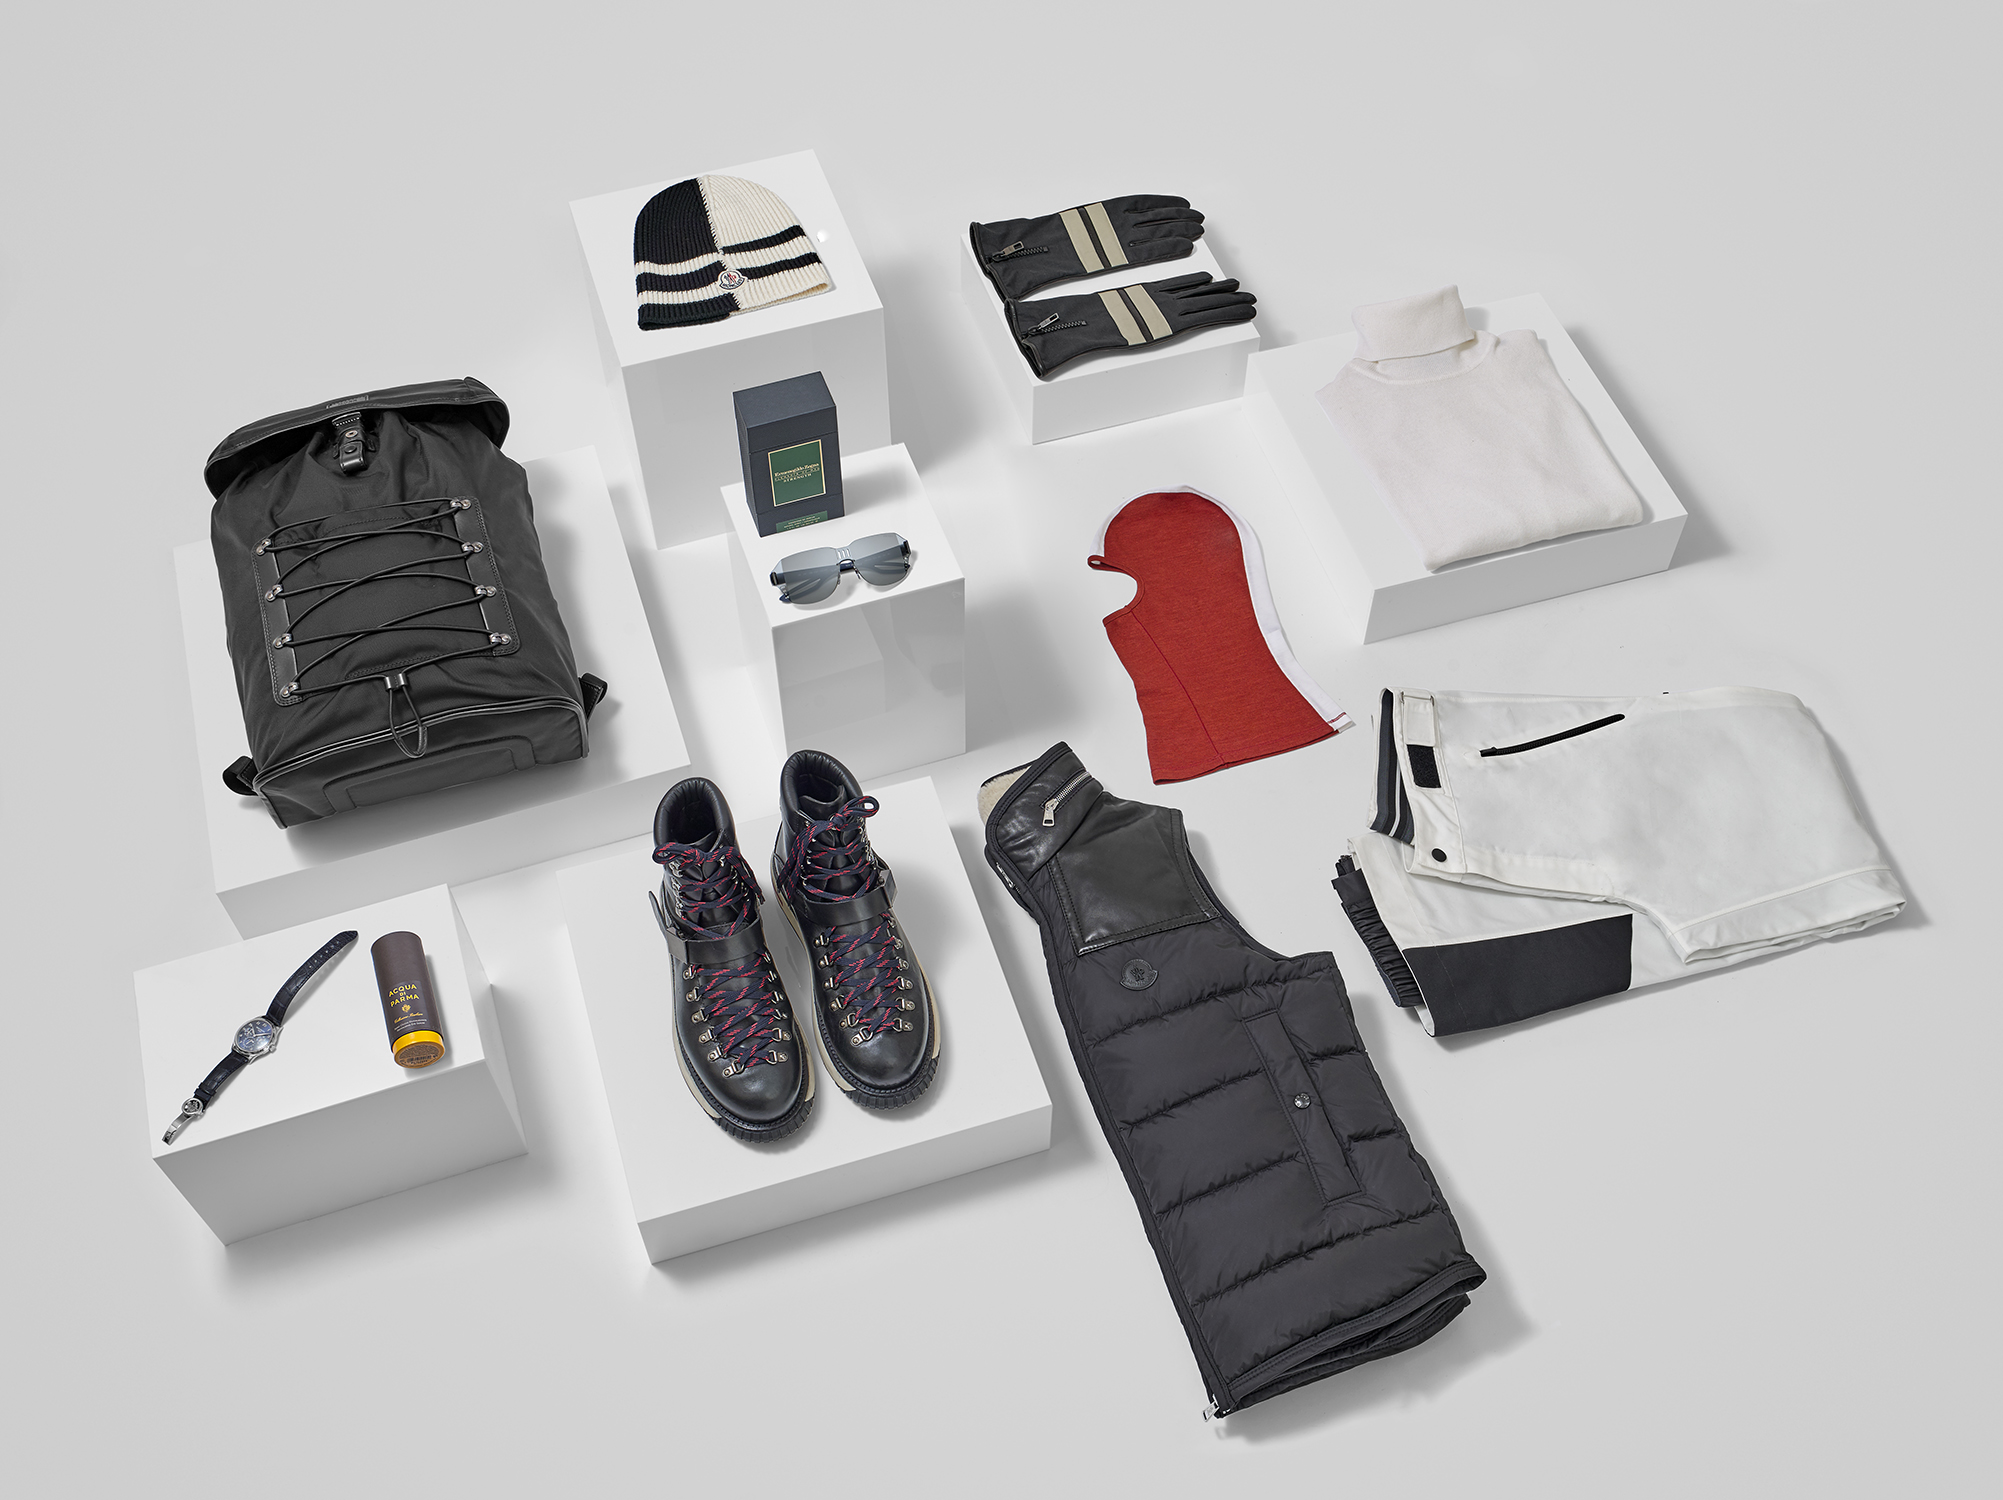 Still life mens winter clothing and accessories. Captured at South London photographic studio by product and still life photographer chris howlett.